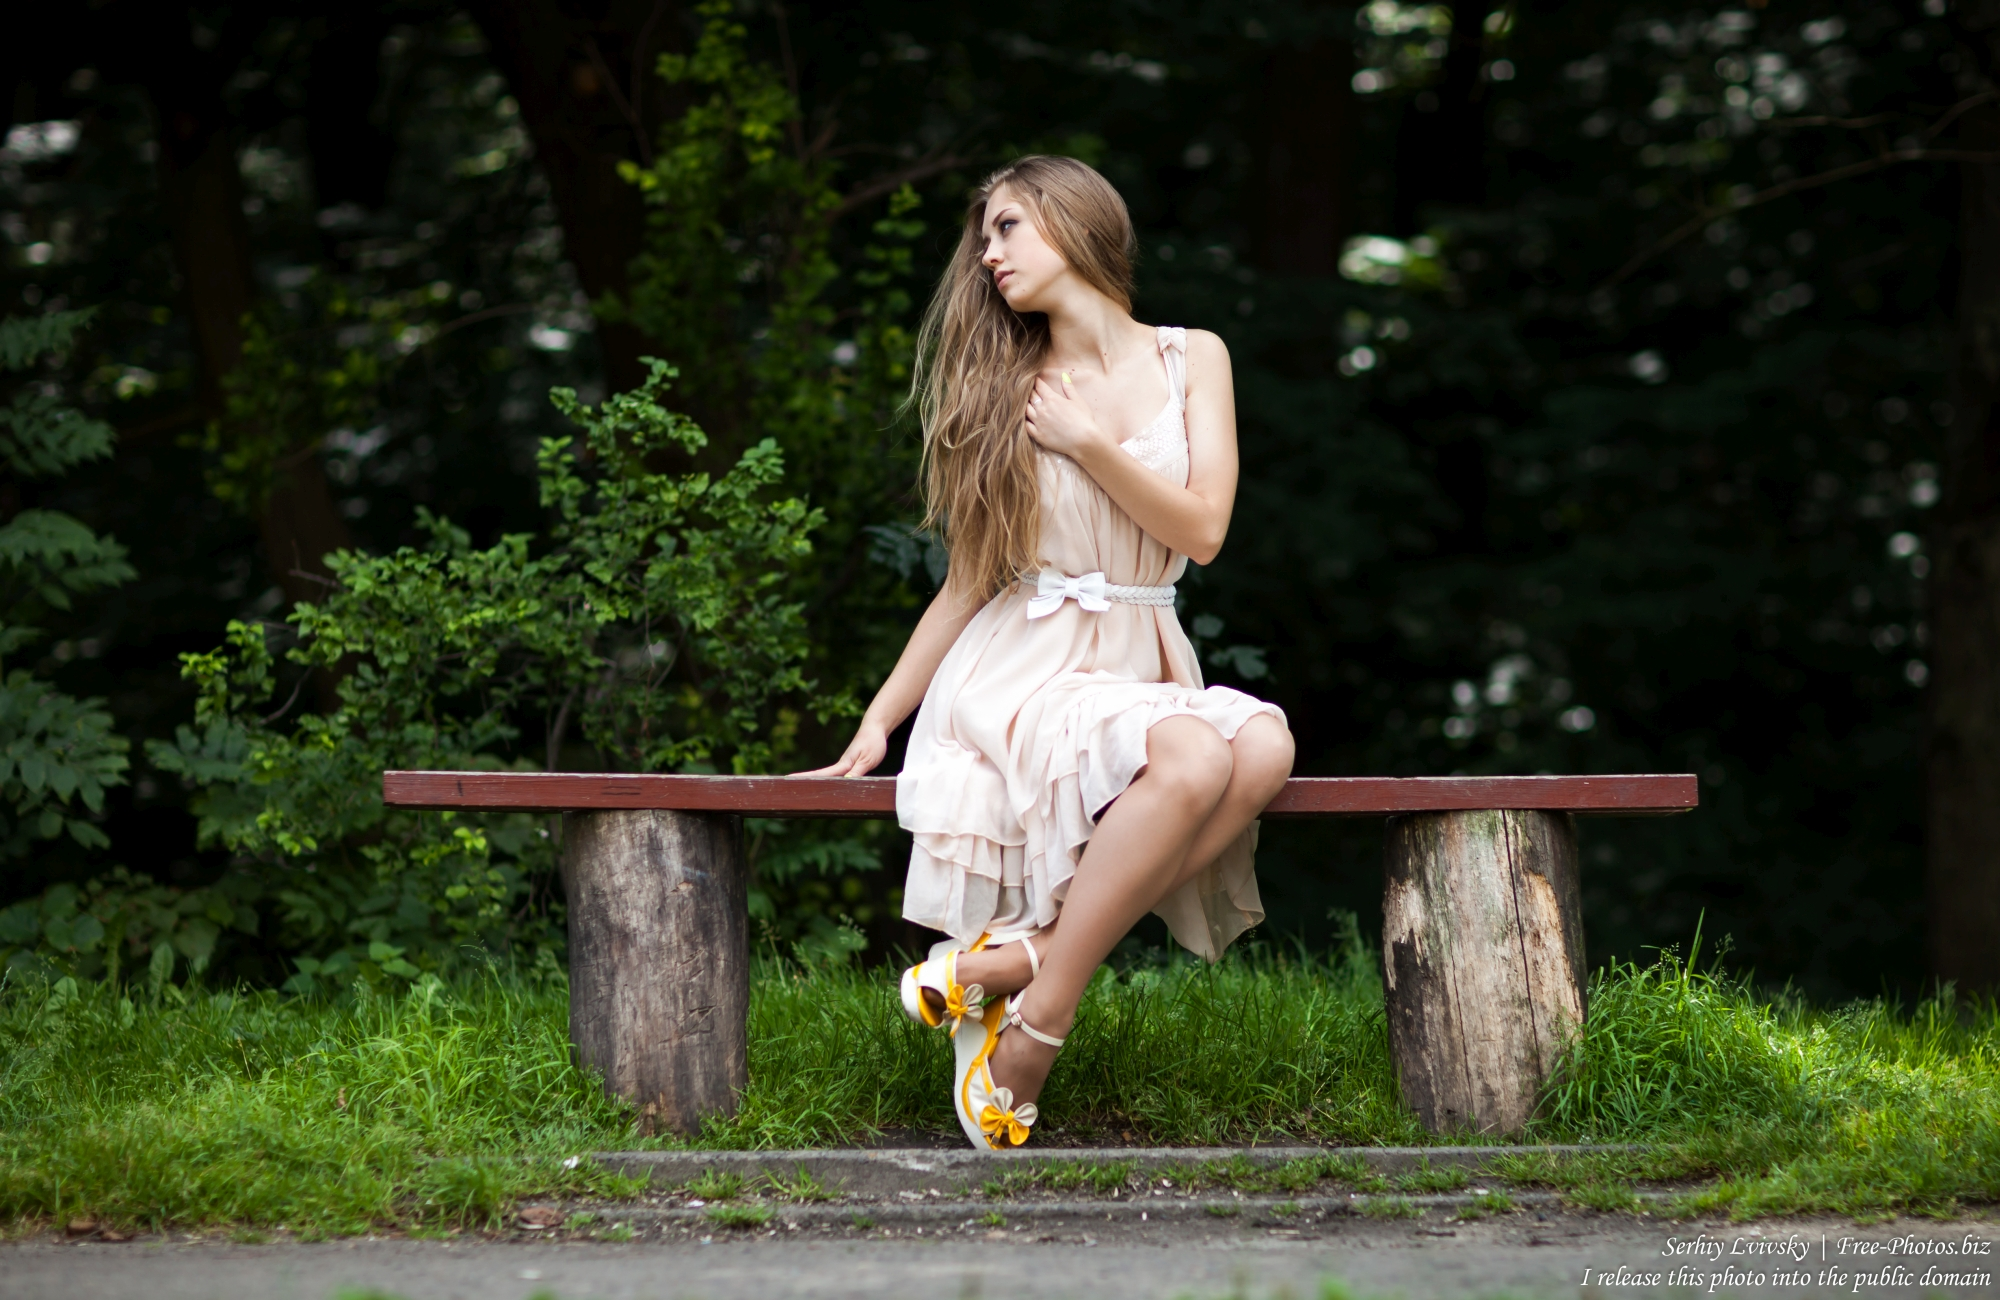 a_16-year-old_natural_blonde_girl_photographed_in_august_2016_by_serhiy_lvivsky_23